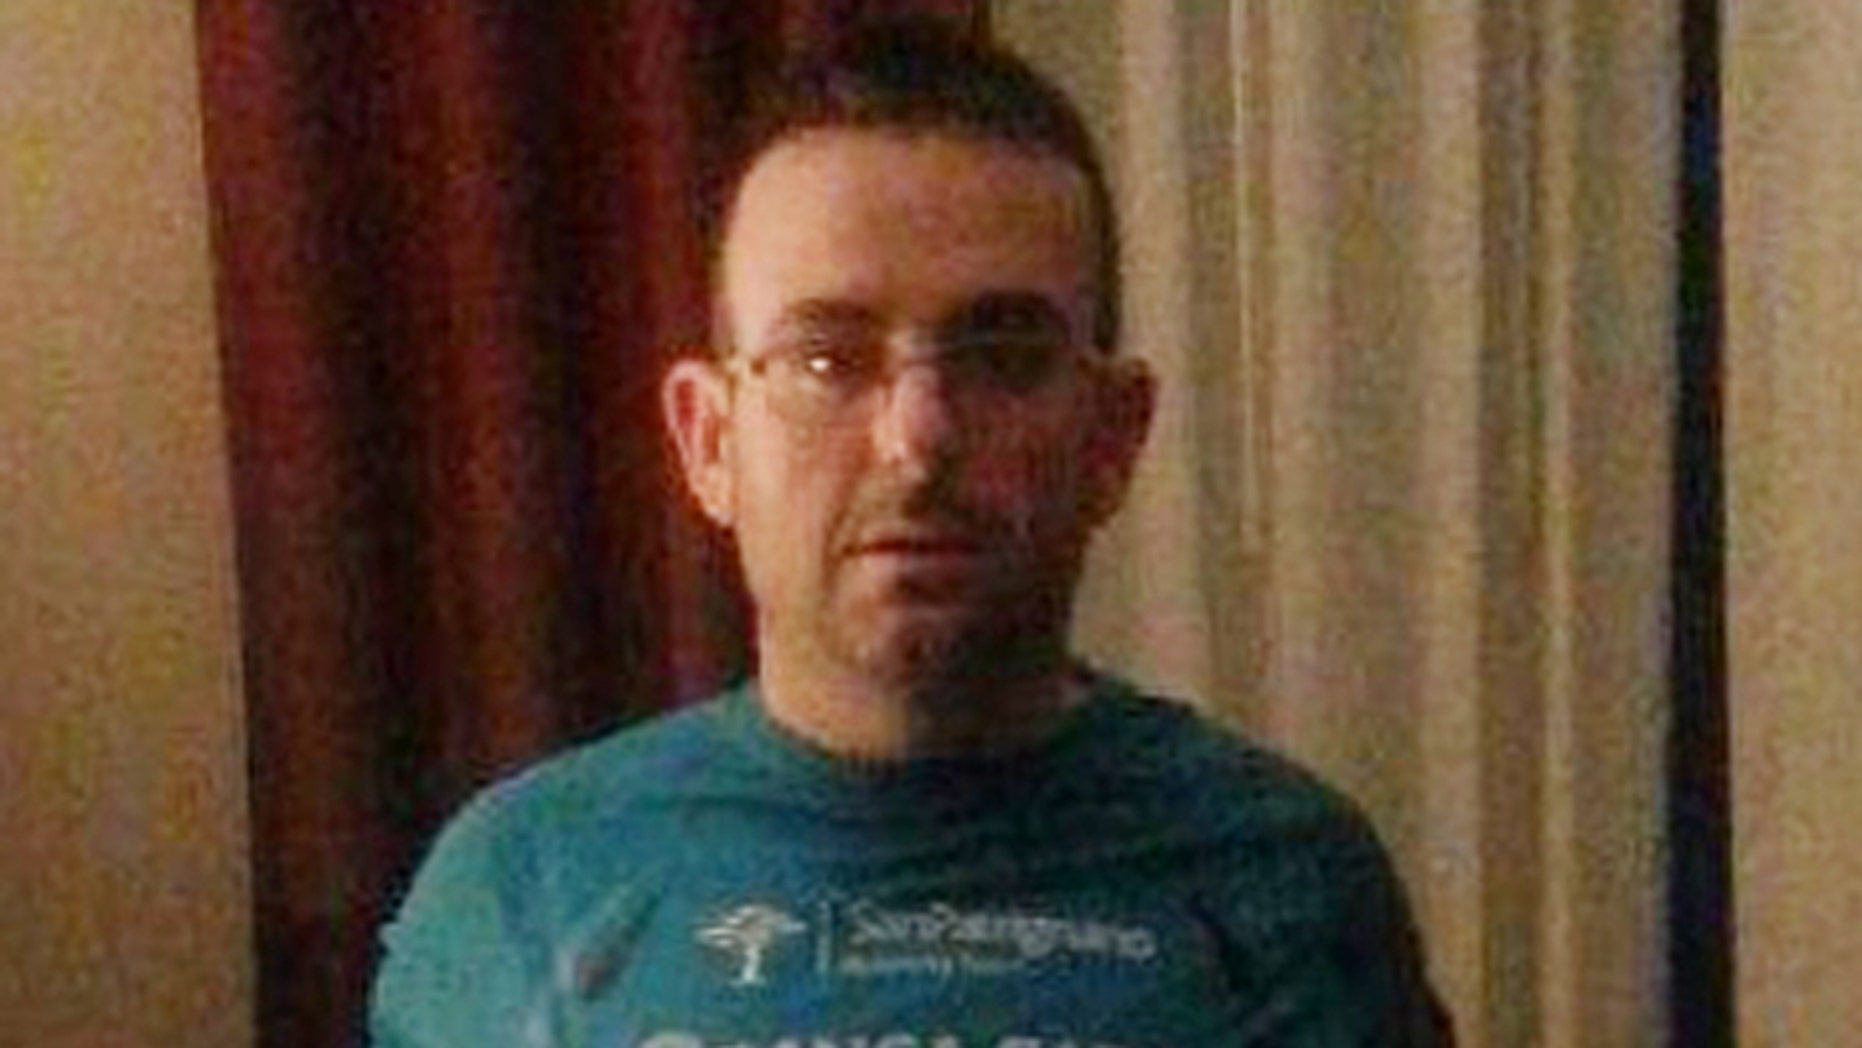 The NYPD located Gianclaudio Marengo on Tuesday. He had been missing since completing the NYC Marathon on Sunday.